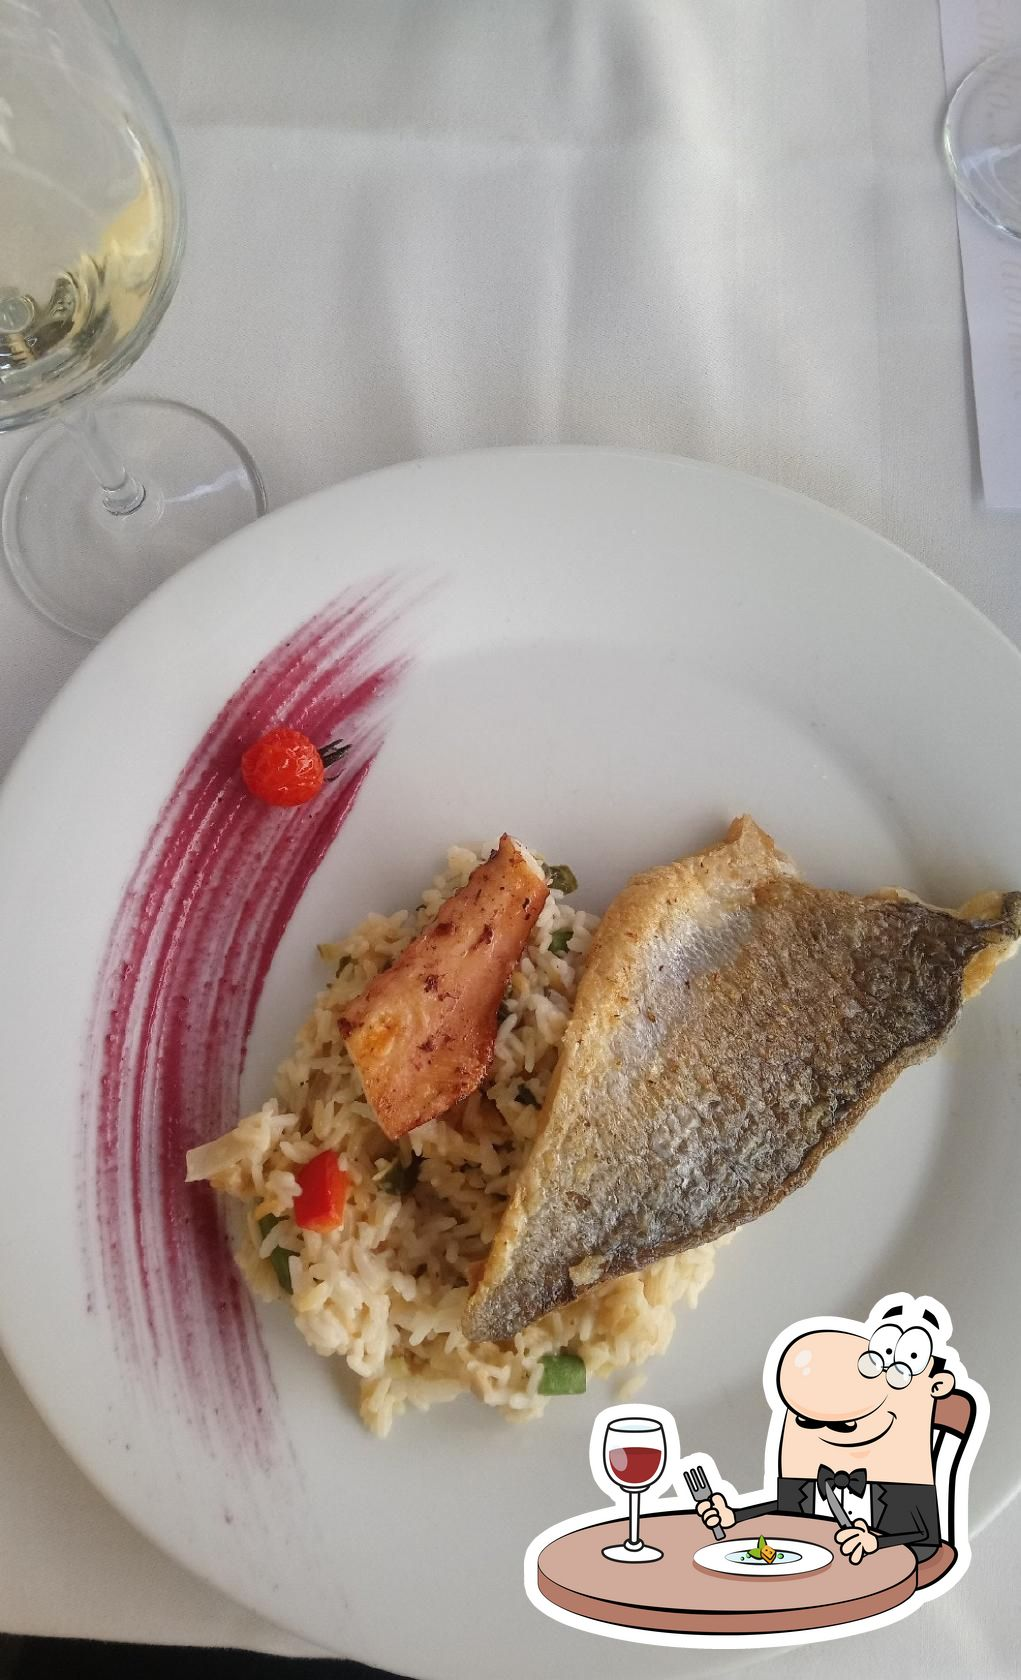 Meals at Hotel Evropa